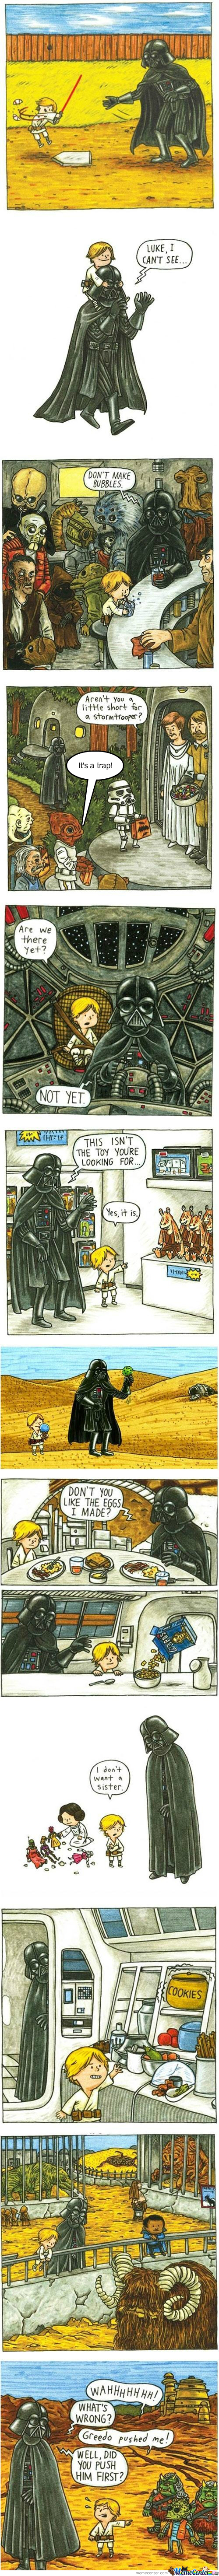 [RMX] If Darth Vader Had Been A Good Father